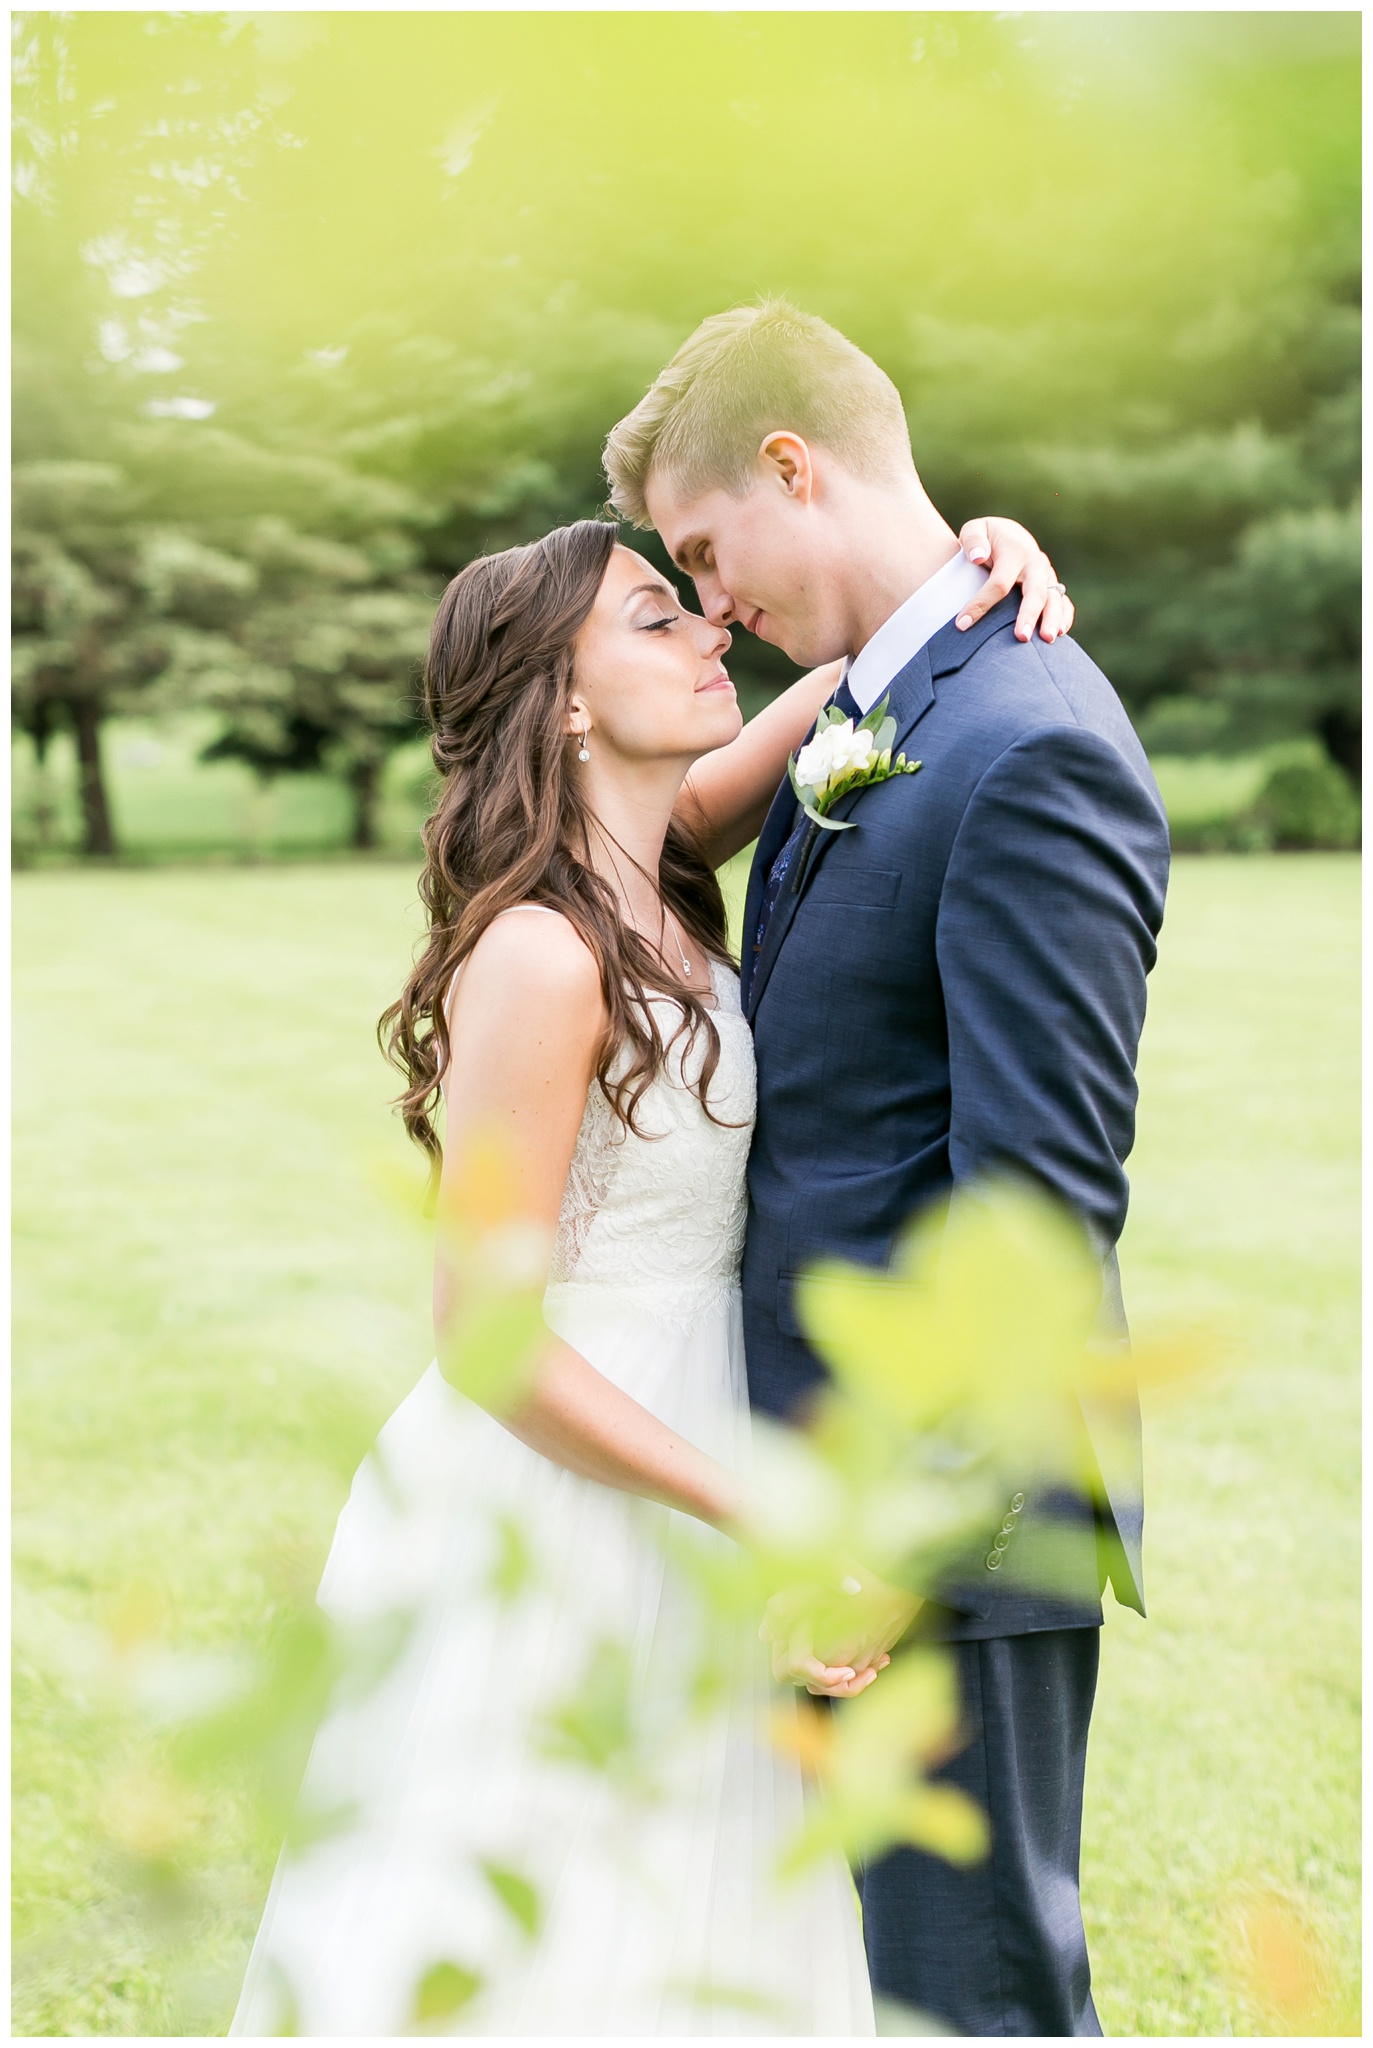 boxed_and_burlap_wedding_caynay_photo_delavan_wisconsin_photographer_3771.jpg